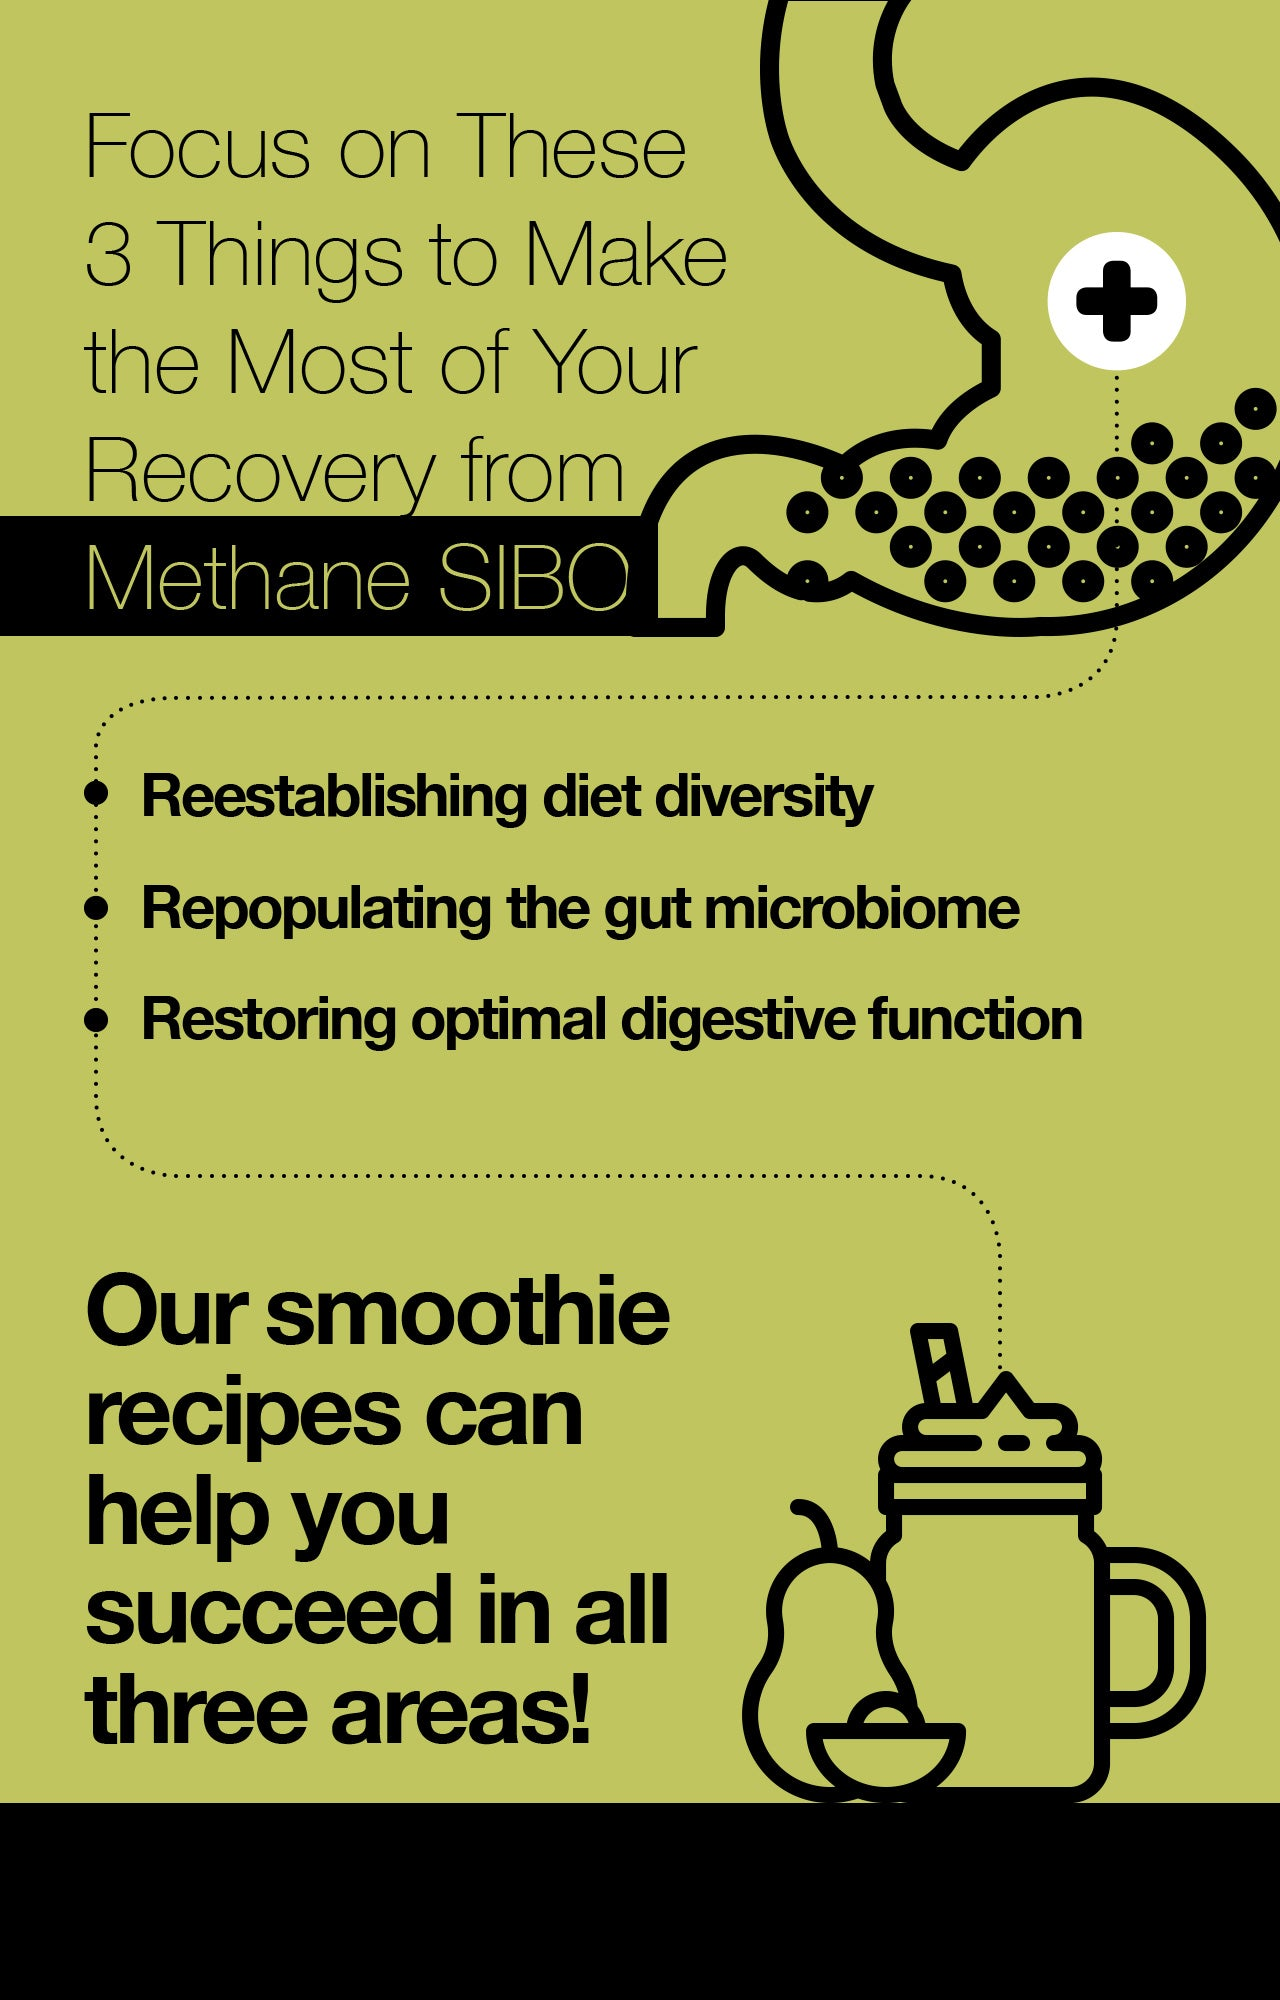 Focus on These 3 Things to Make the Most of Your Recovery from Methane SIBO